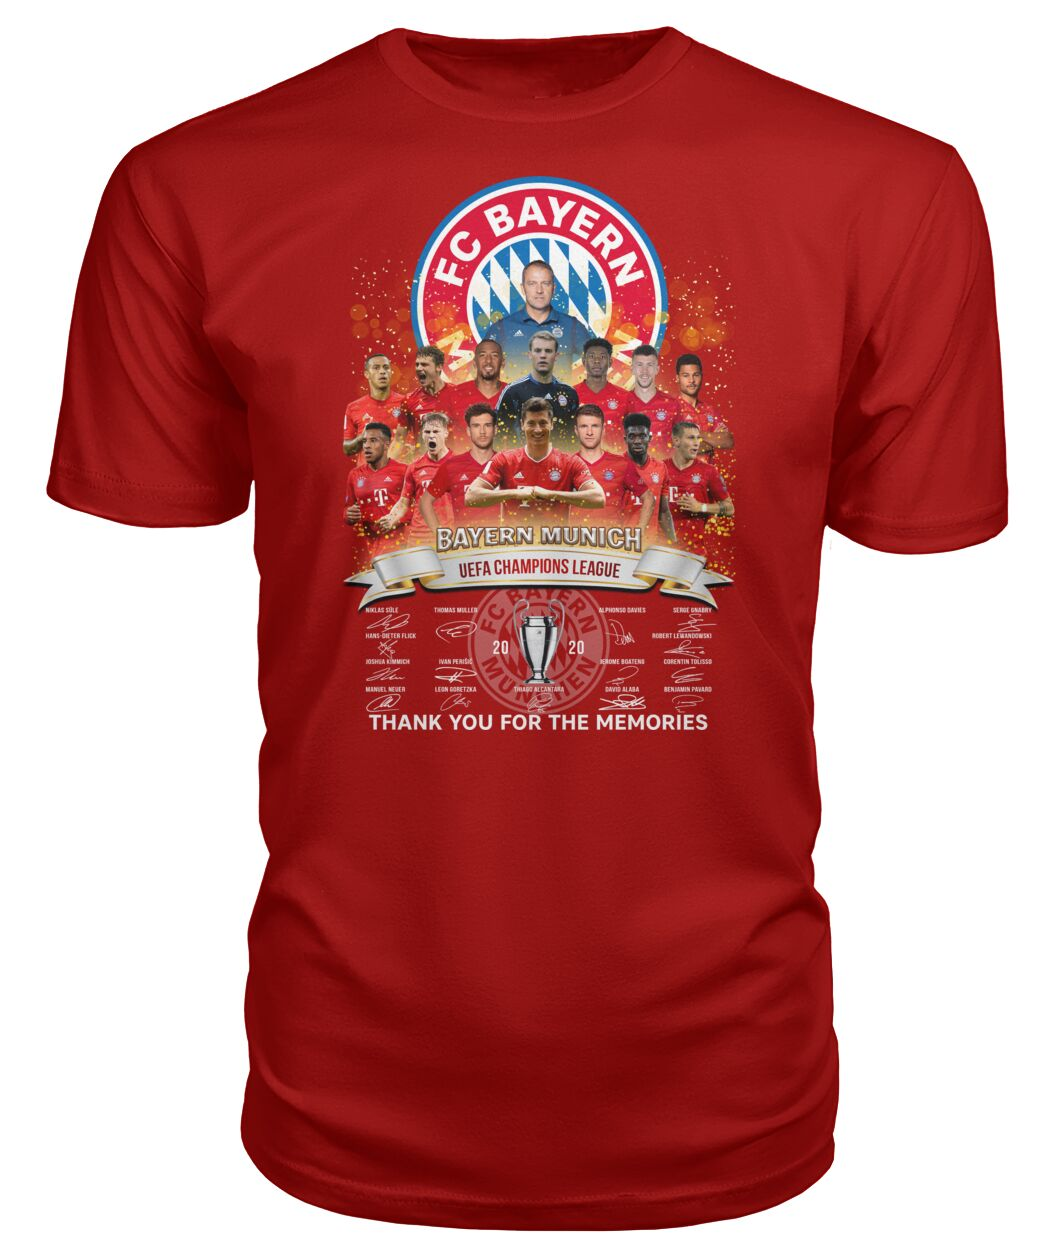 fc bayern munich 2020 uefa champions league thank you for the memories signatures tshirt